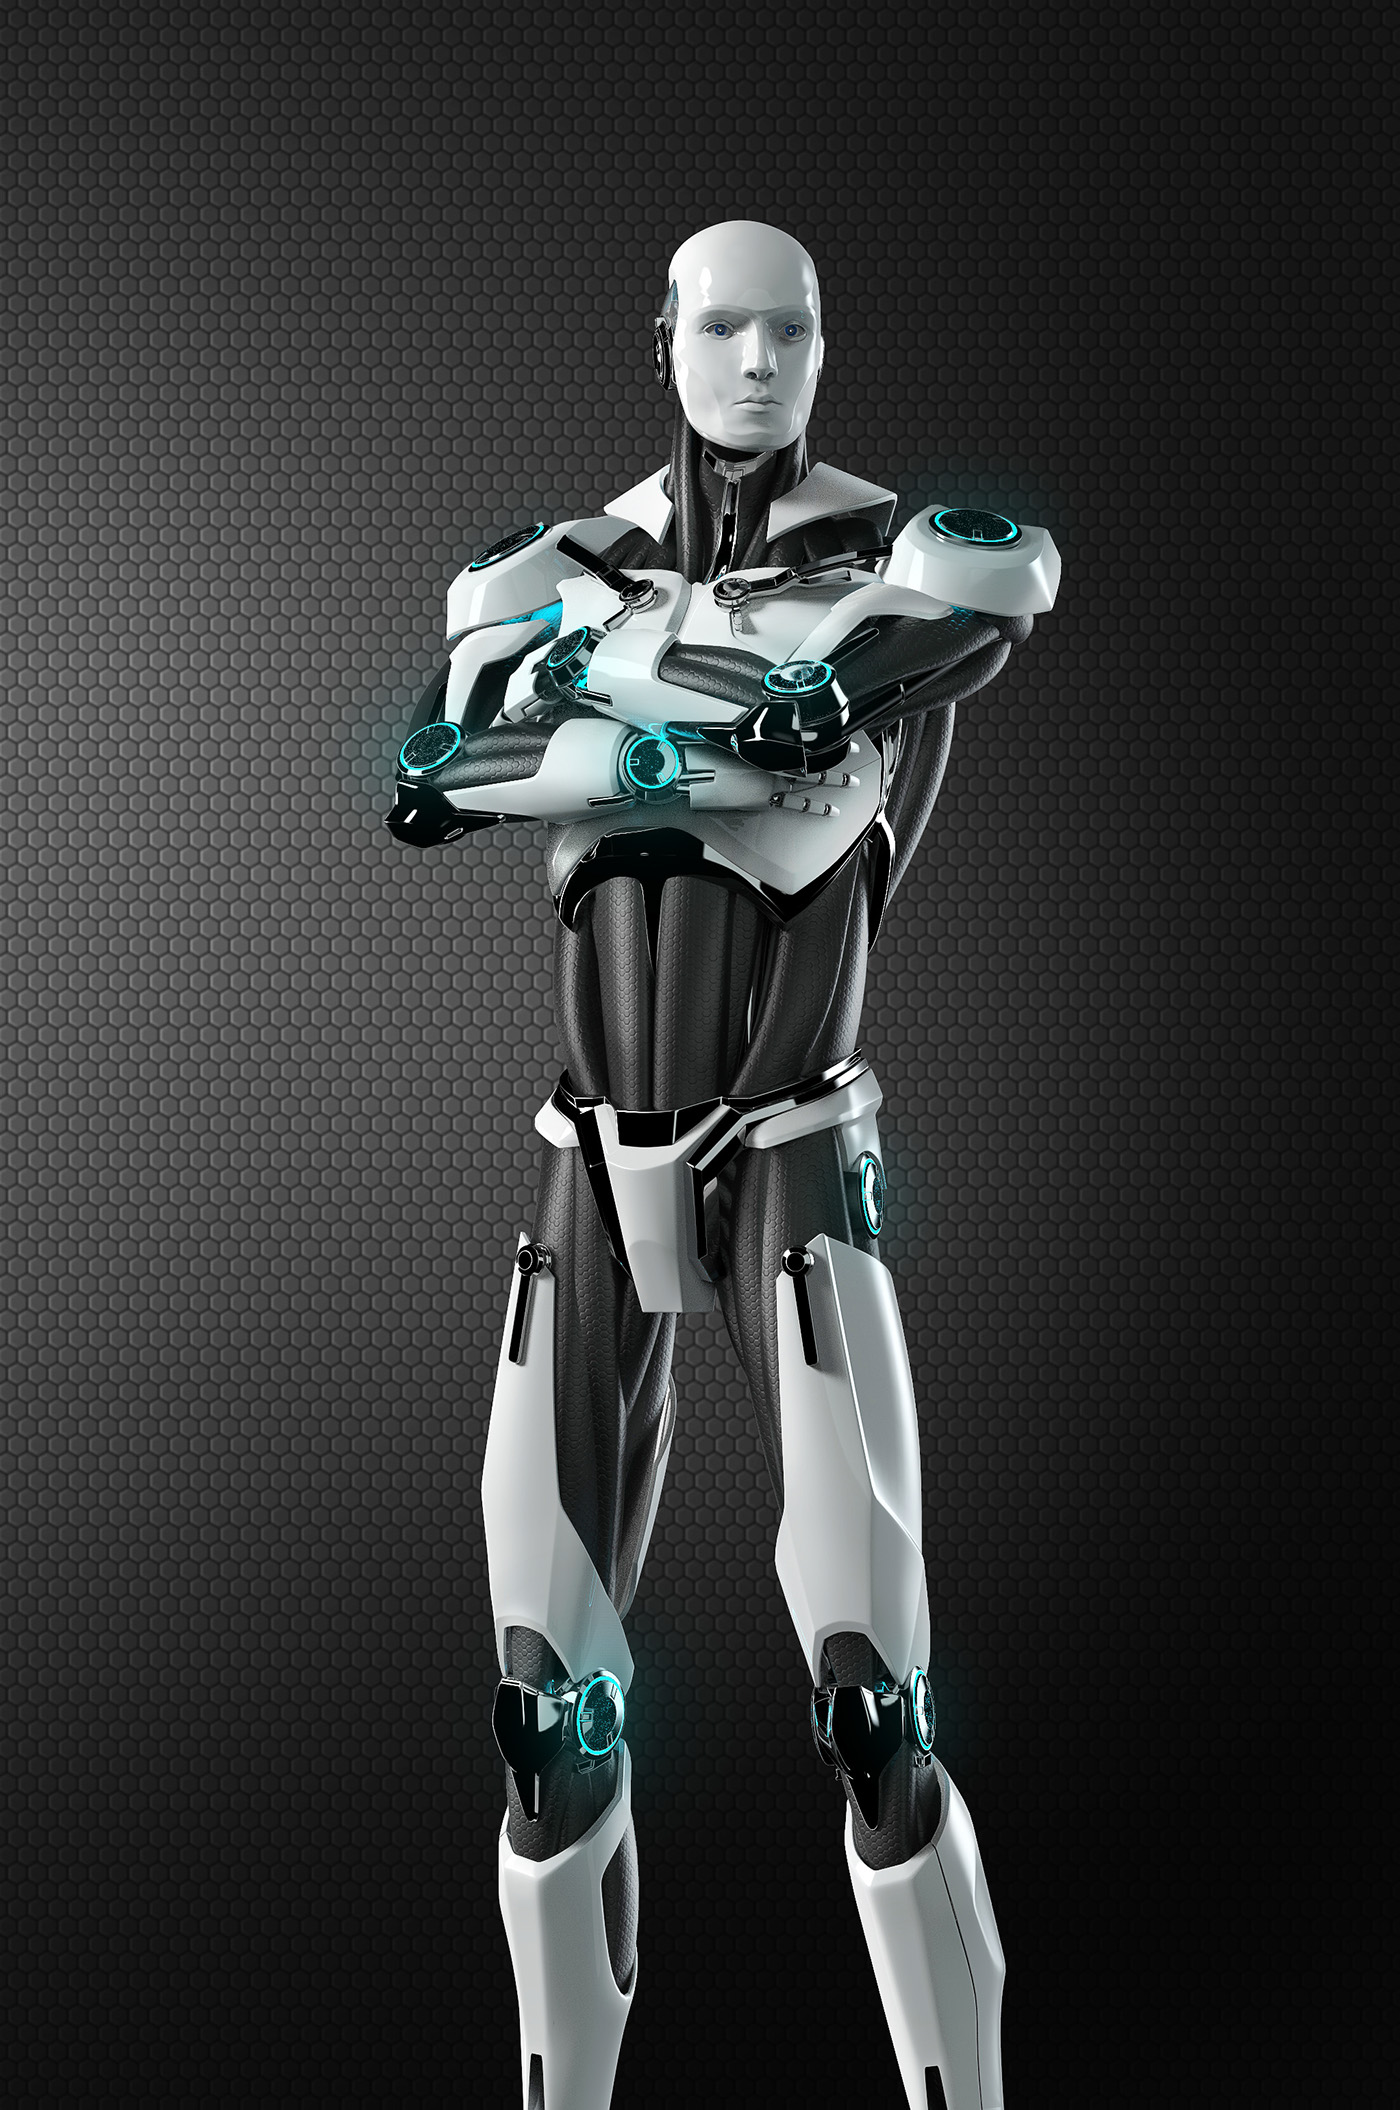 ESET robot / 3d model on Behance